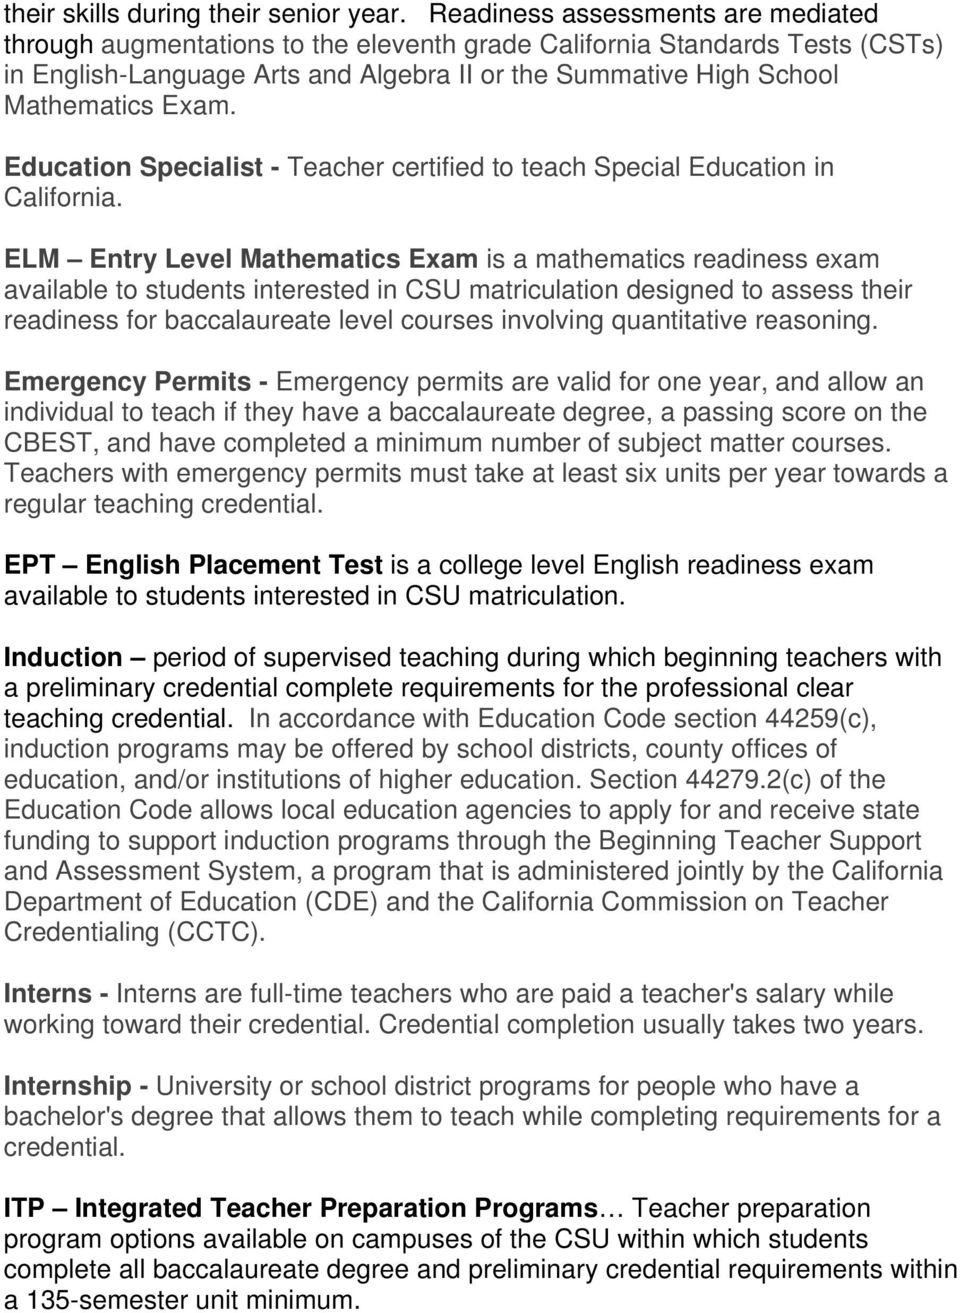 Education Specialist - Teacher certified to teach Special Education in California.